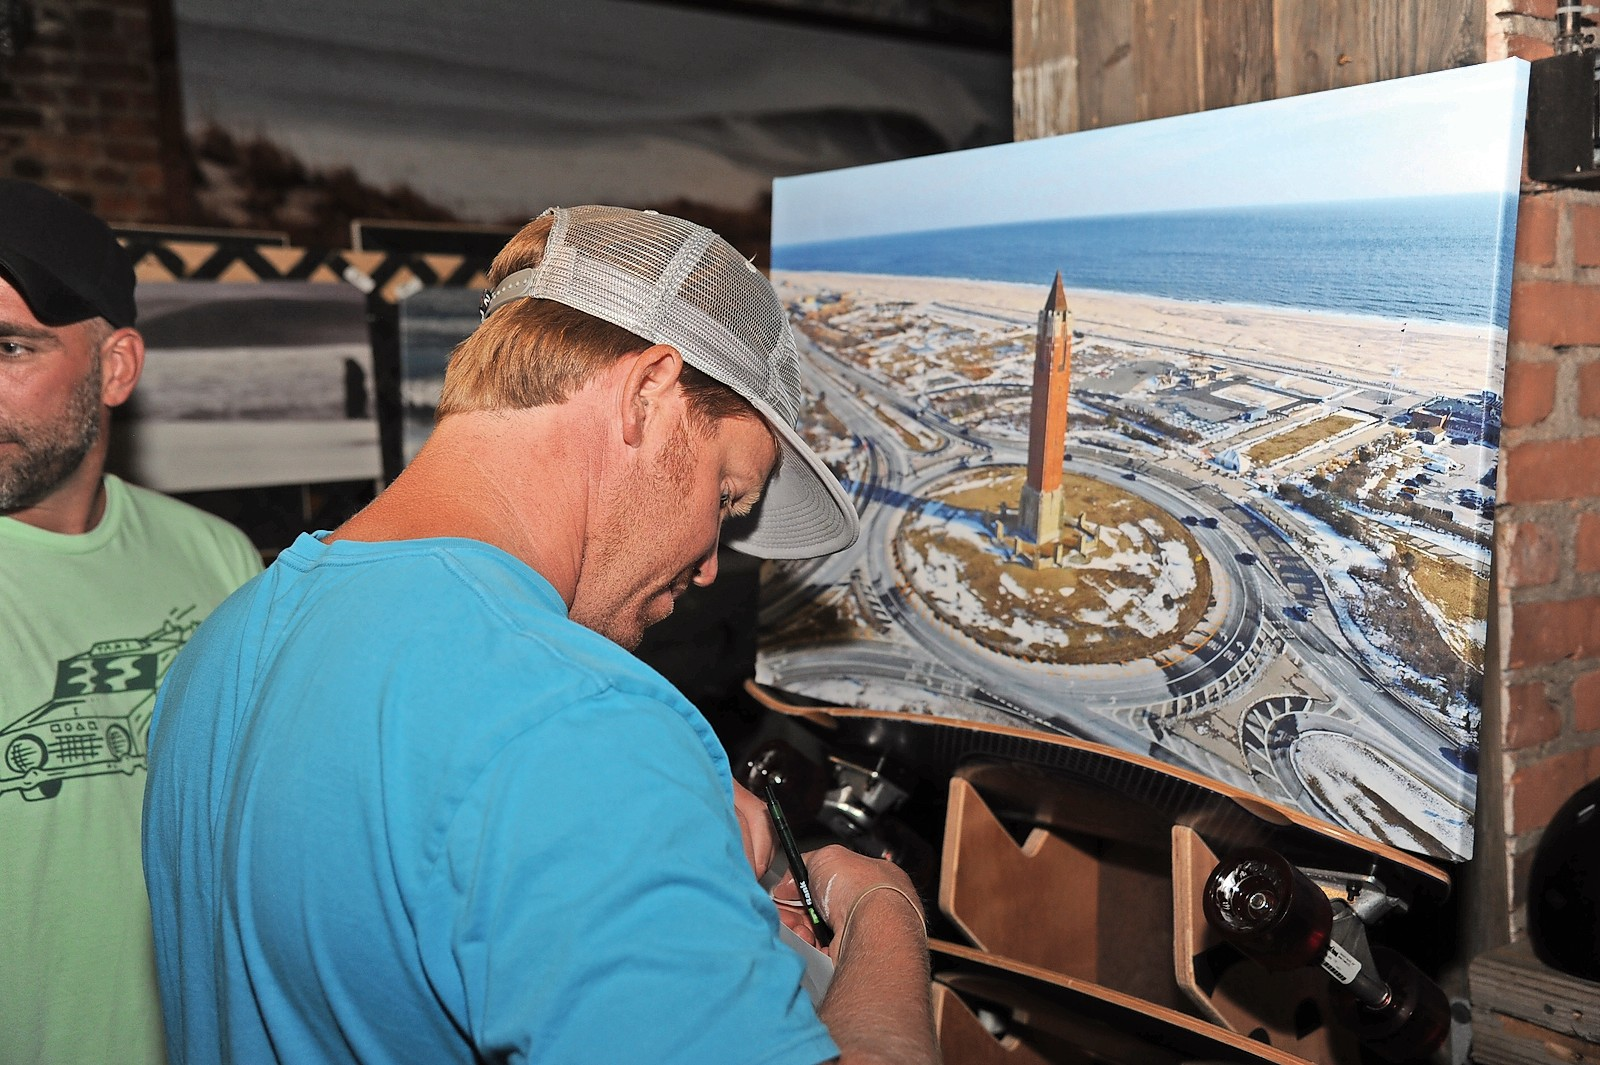 Skudin Surf and Surf for All co-founder Cliff Skudin priced an aerial image of Jones Beach at the event.